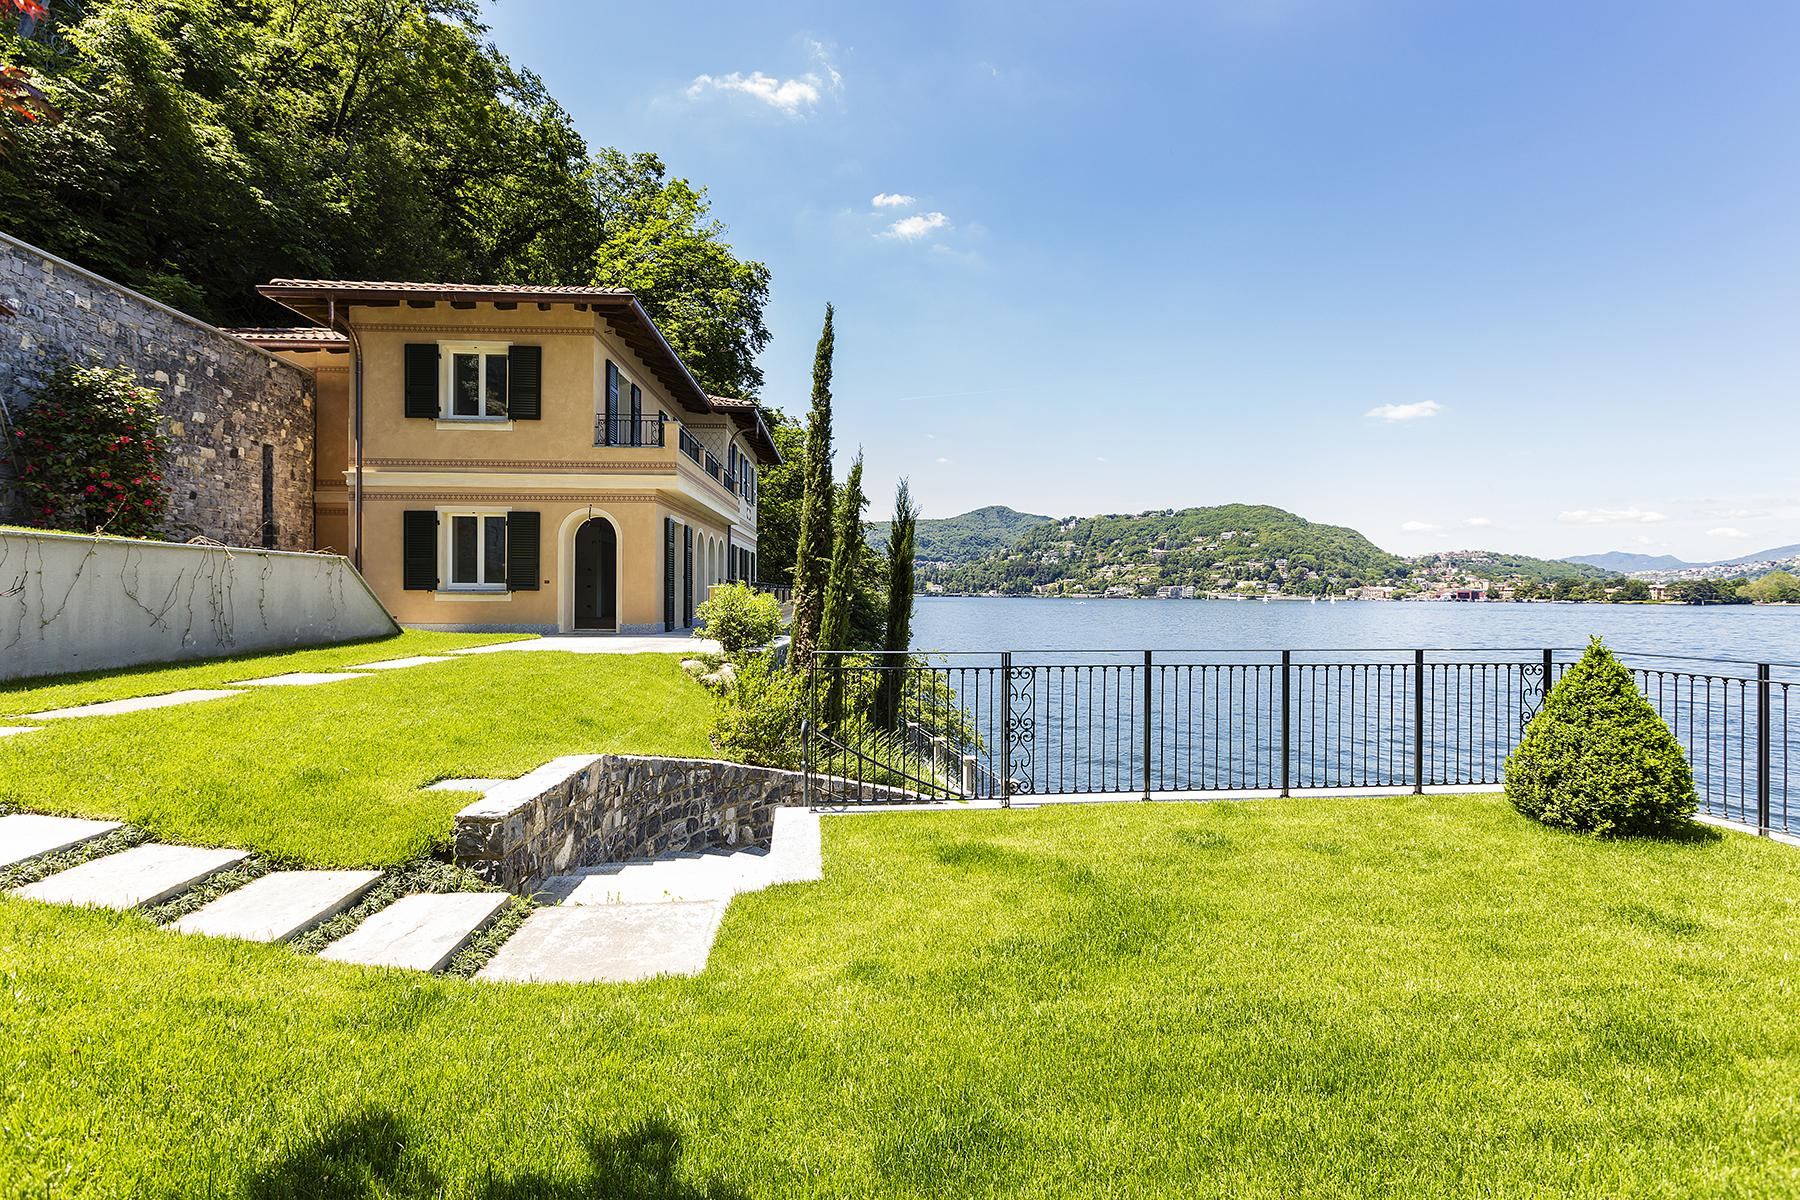 Fascinating villa in one of the most strategic areas of the lake - 14